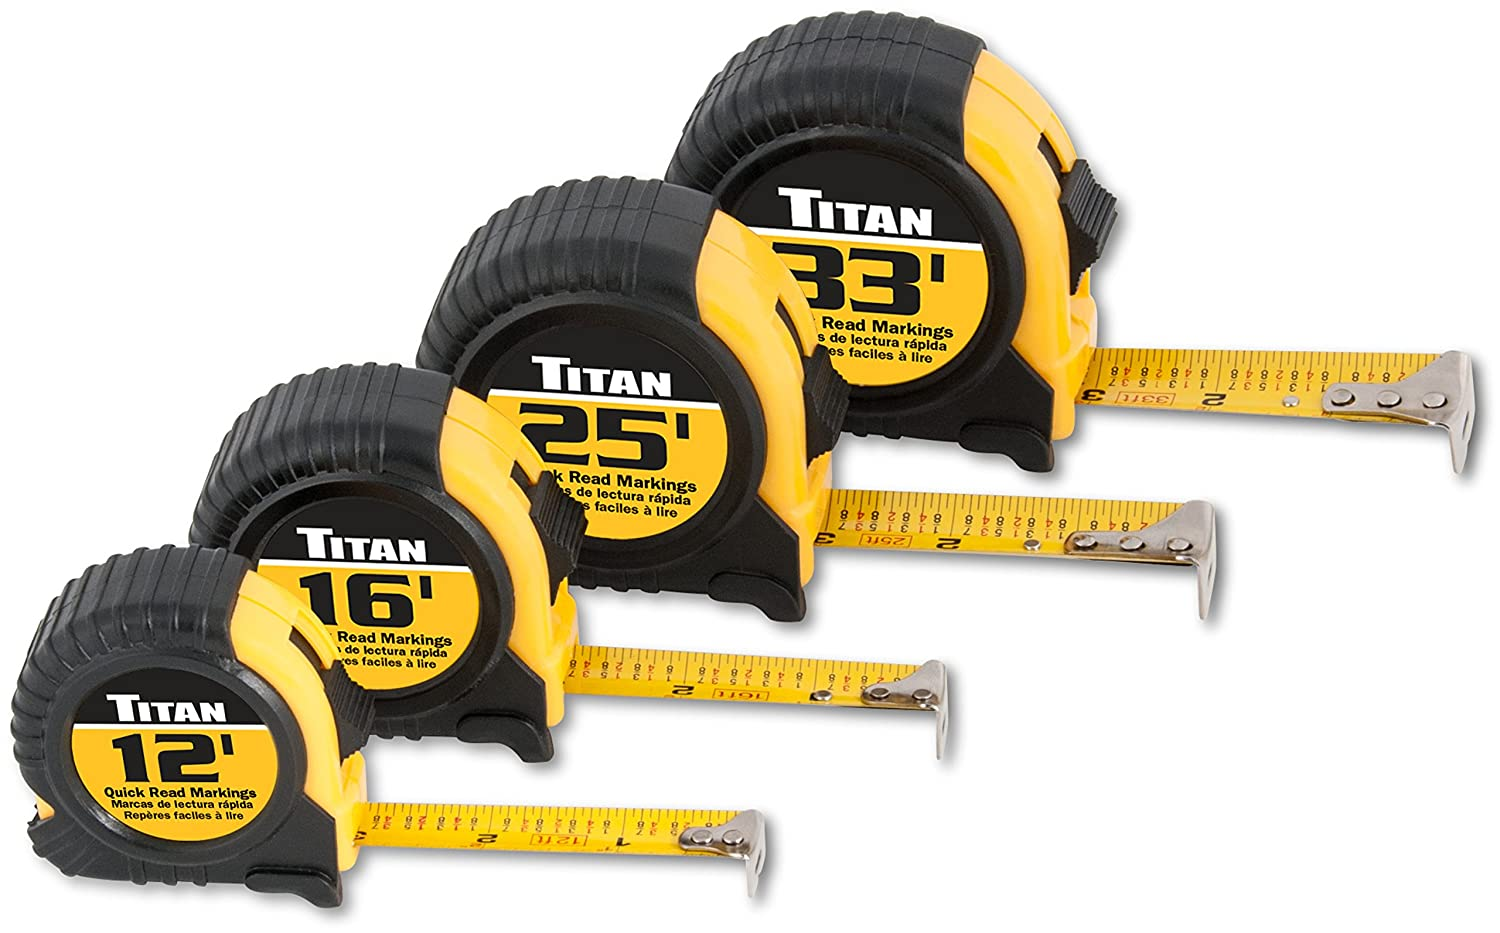 Top 10 Best Tape Measures